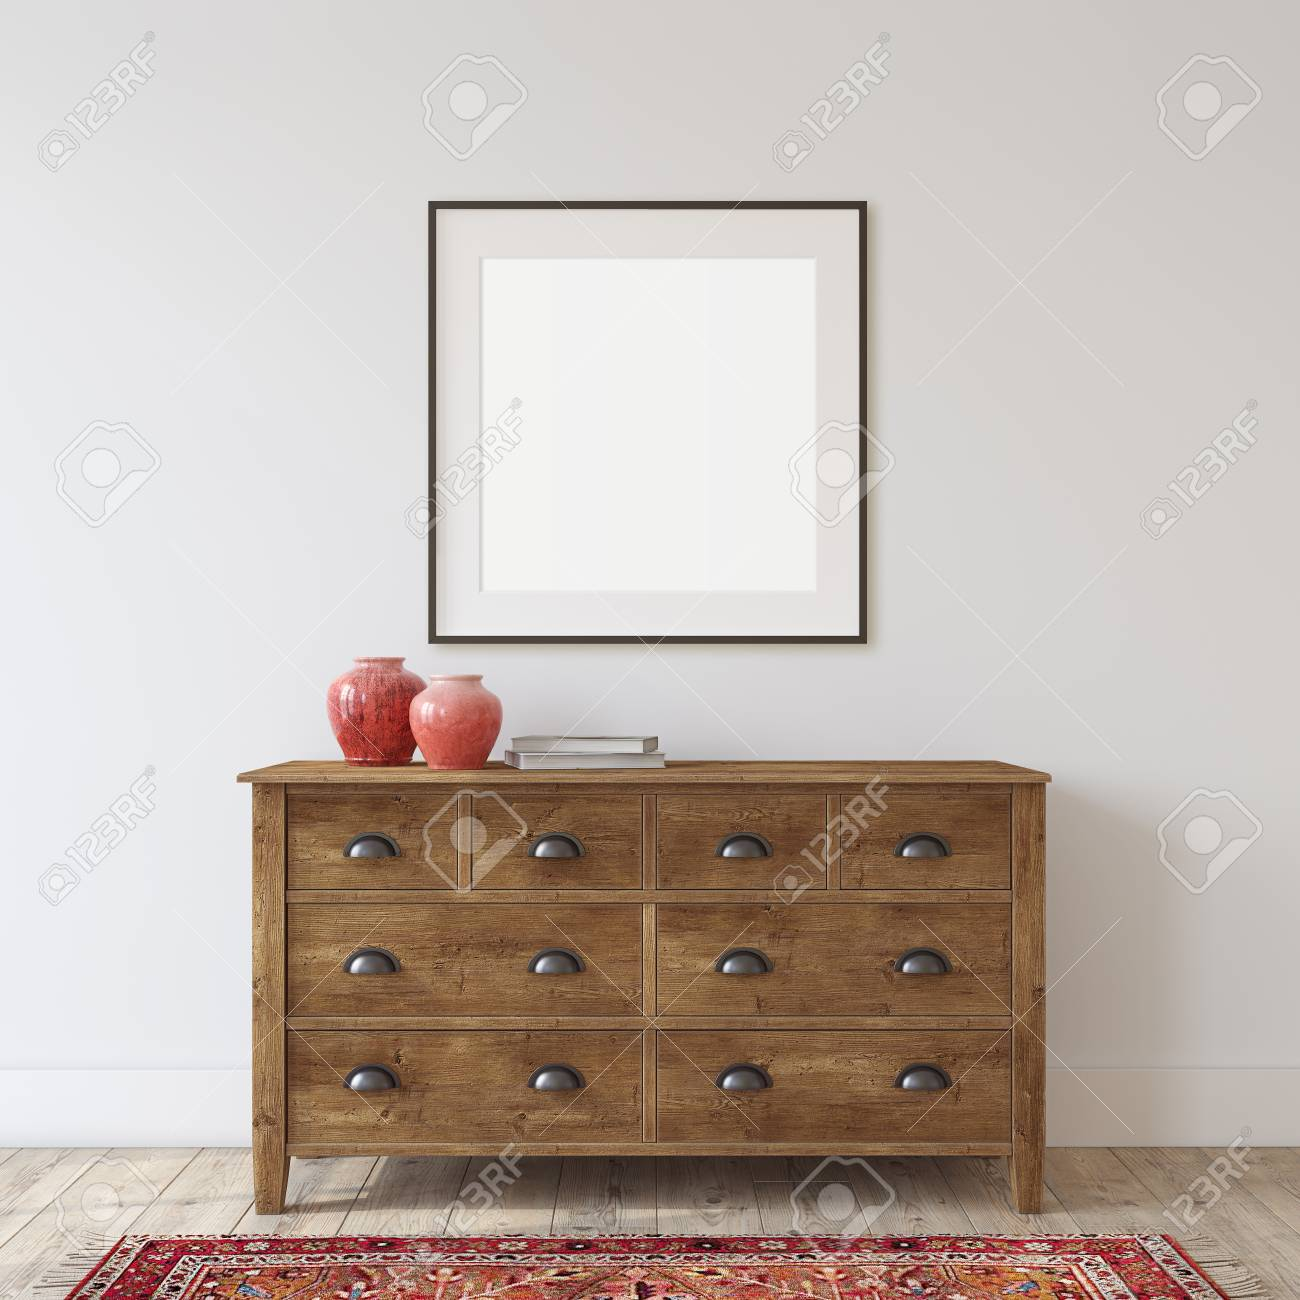 Farmhouse entryway. Wooden dresser near white wall. Frame mockup. Black square frame on the wall. 3d render. - 118411810